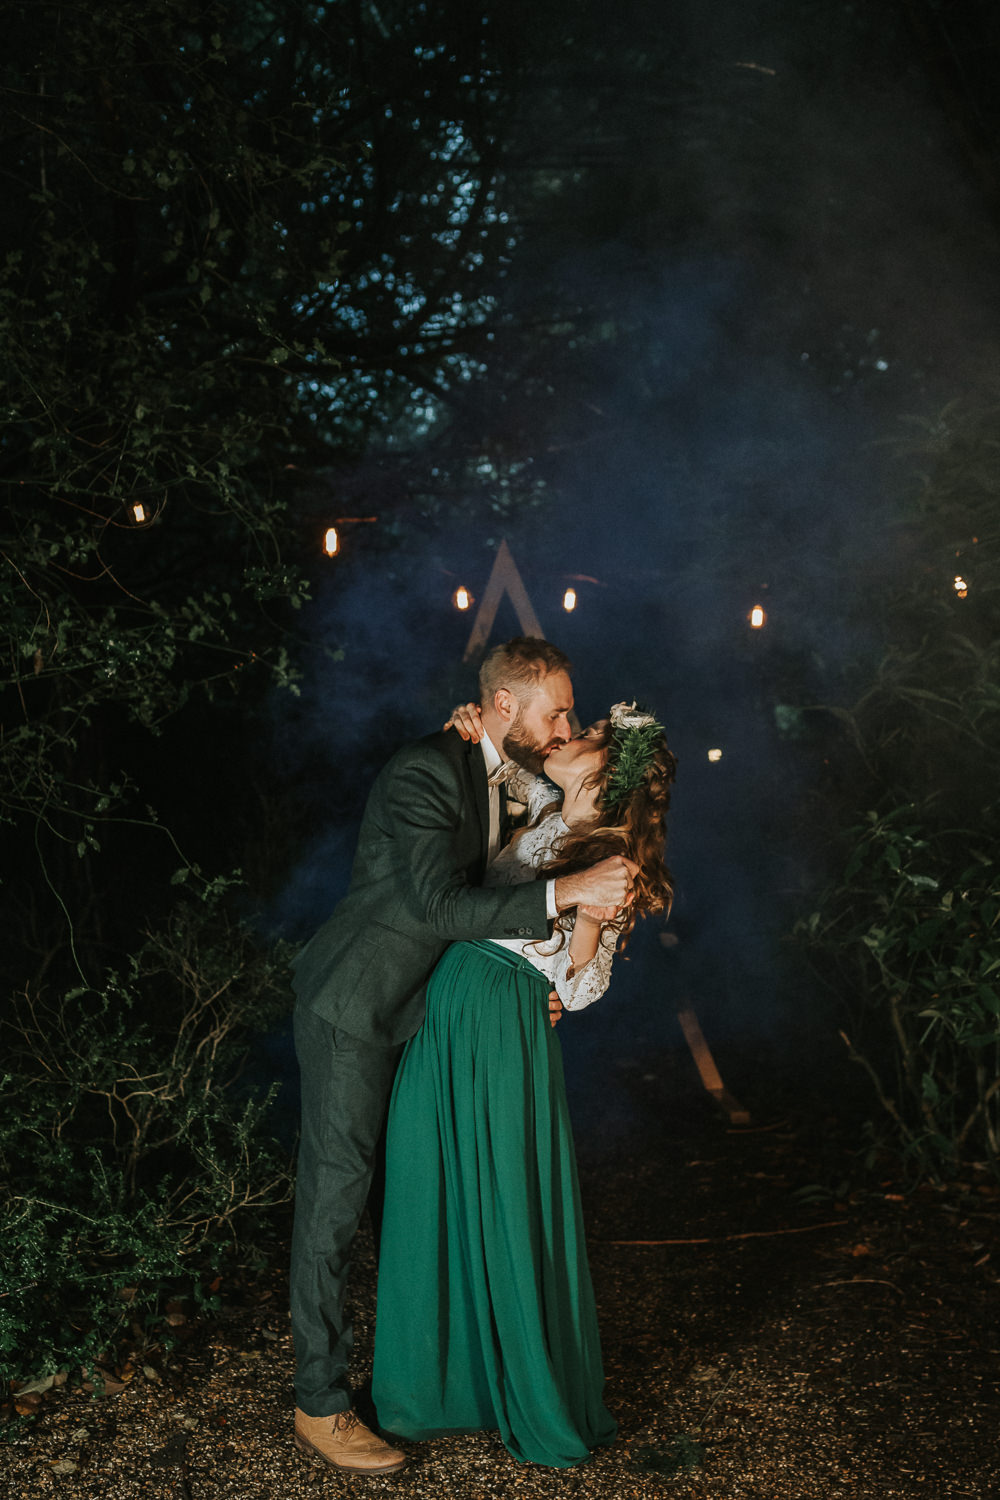 Smoke Bomb Backdrop Triangle Wooden Festoon Lights Rugs Ceremony Aisle Woodland Wedding Inspiration Stephanie Dreams Photography